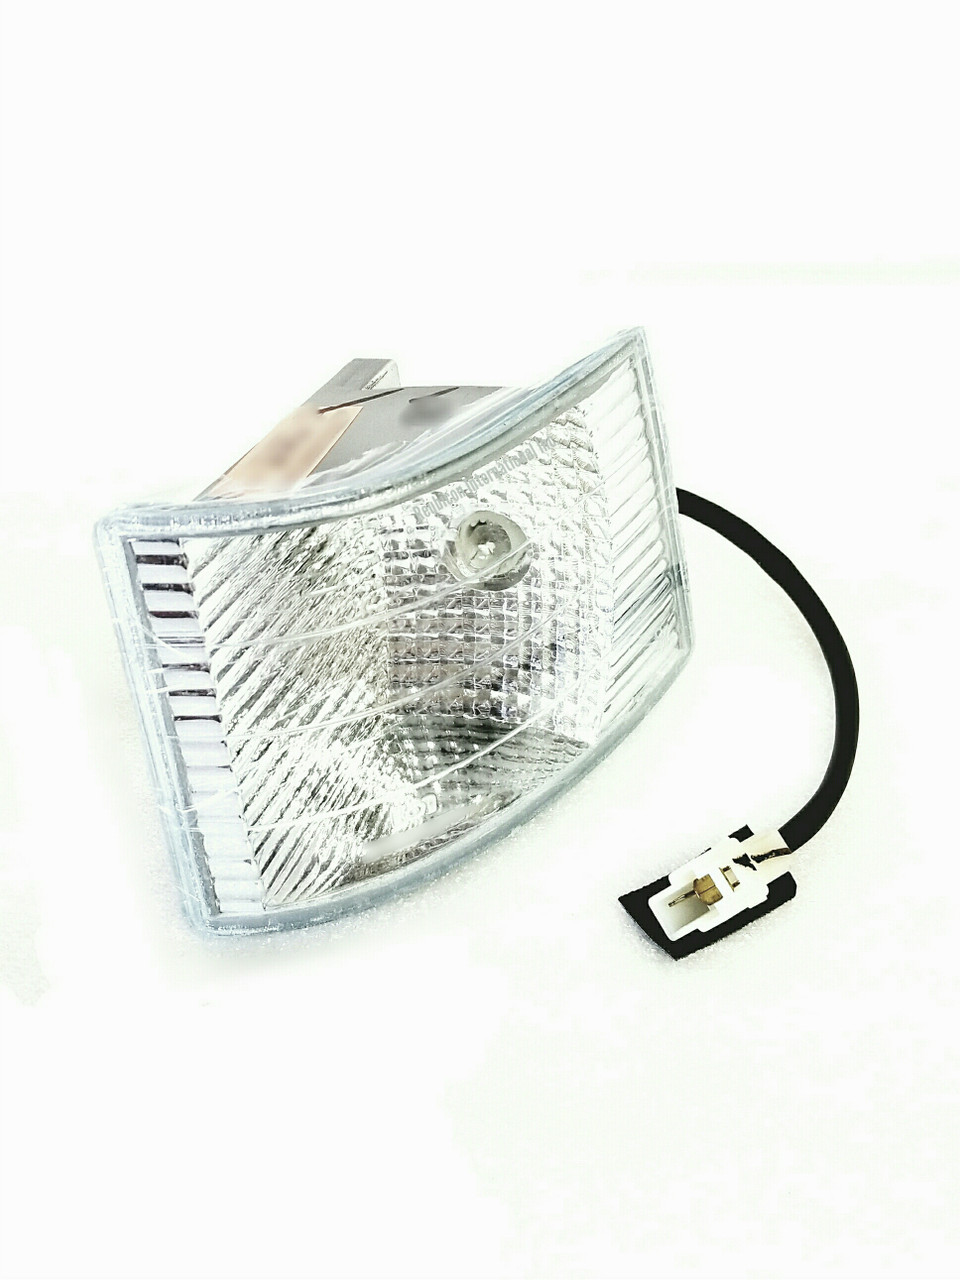 MAHINDRA TRACTOR PARKING LAMP FRONT LH 007700745C91